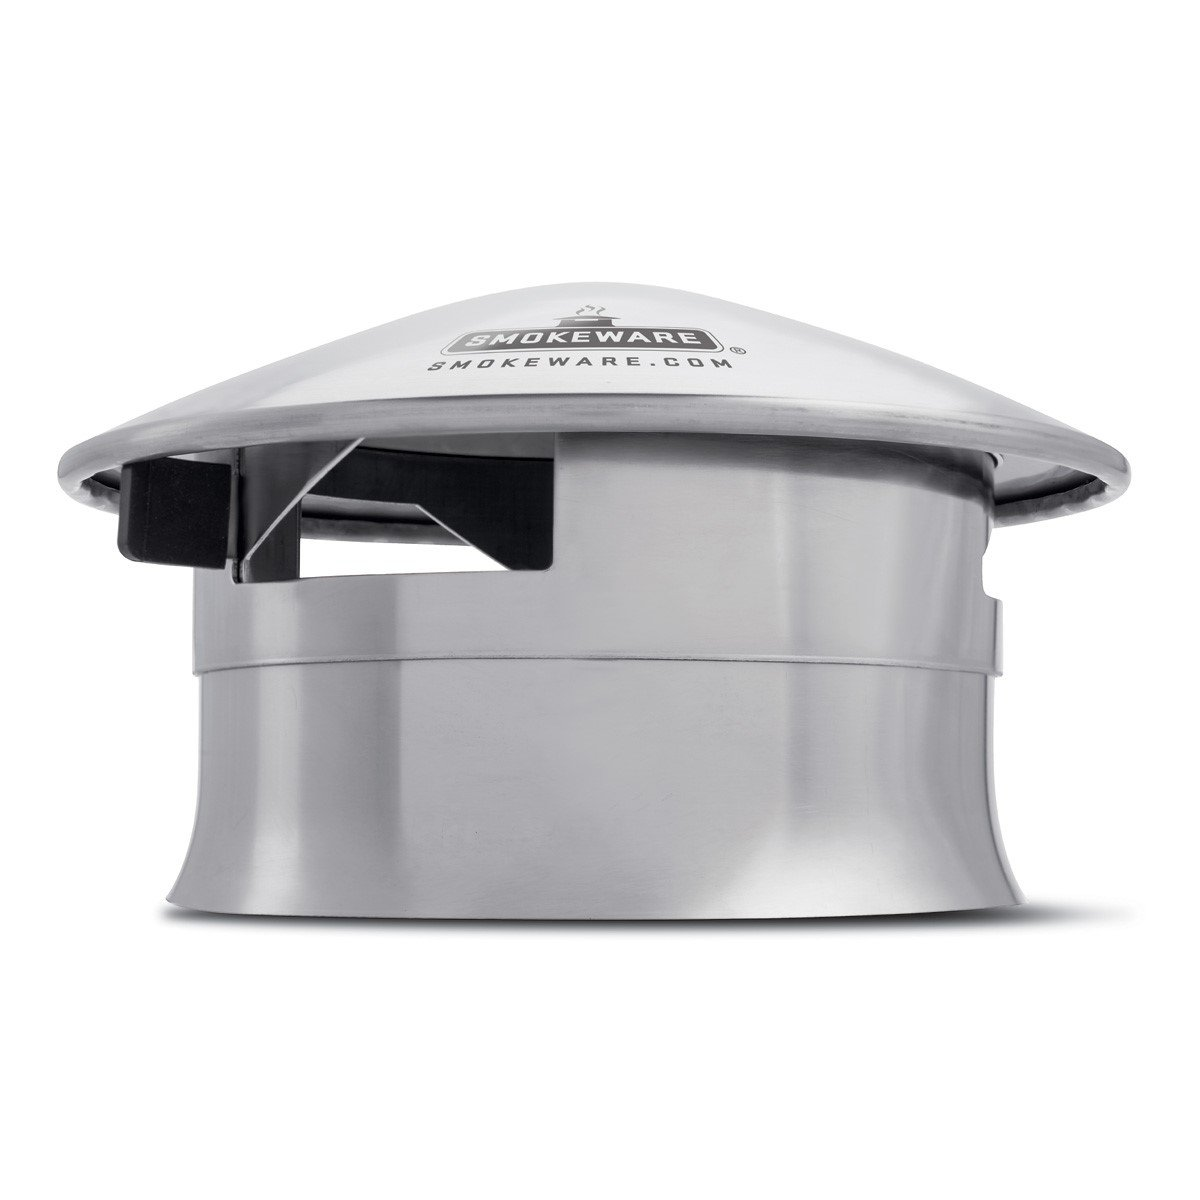 SmokeWare Vented Chimney Cap - Compatible with The Big Green Egg, Stainless Steel Replacement Accessory by SmokeWare